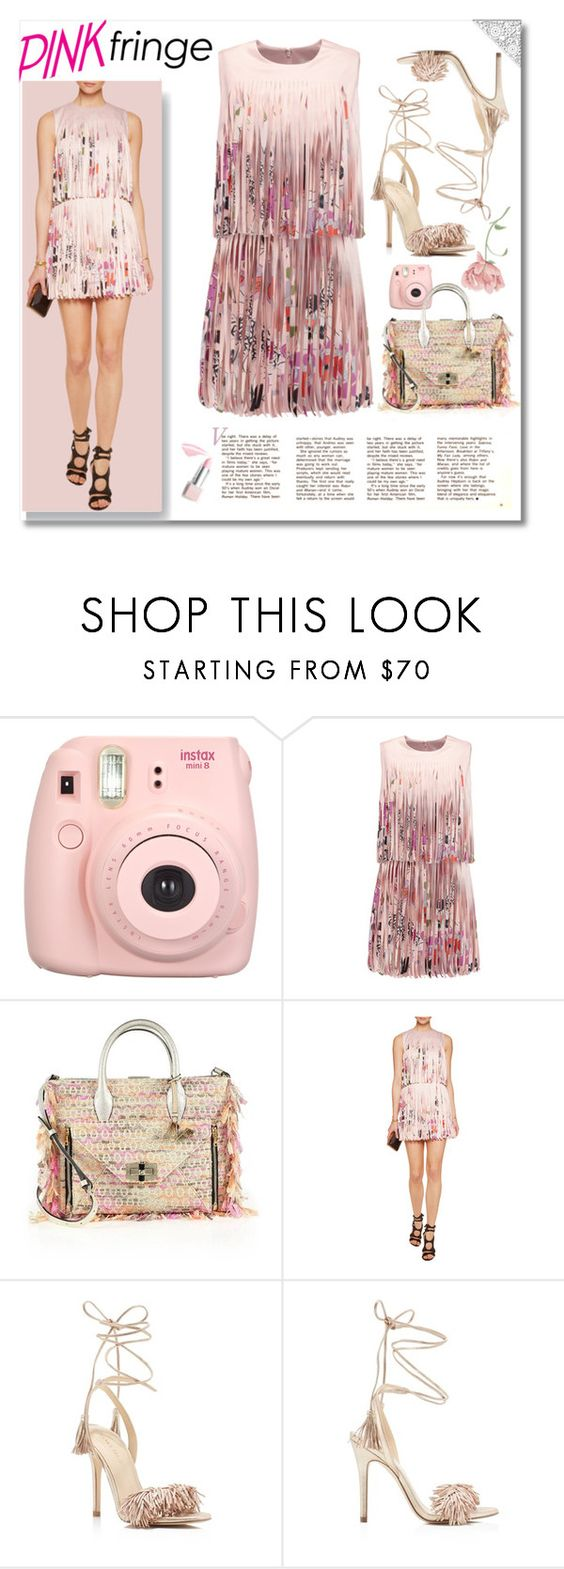 """""""Festival Trend: Fringe"""" by andrea2andare ❤ liked on Polyvore featuring Alexis, Diane Von Furstenberg, Ivanka Trump, Sephora Collection and fringe"""